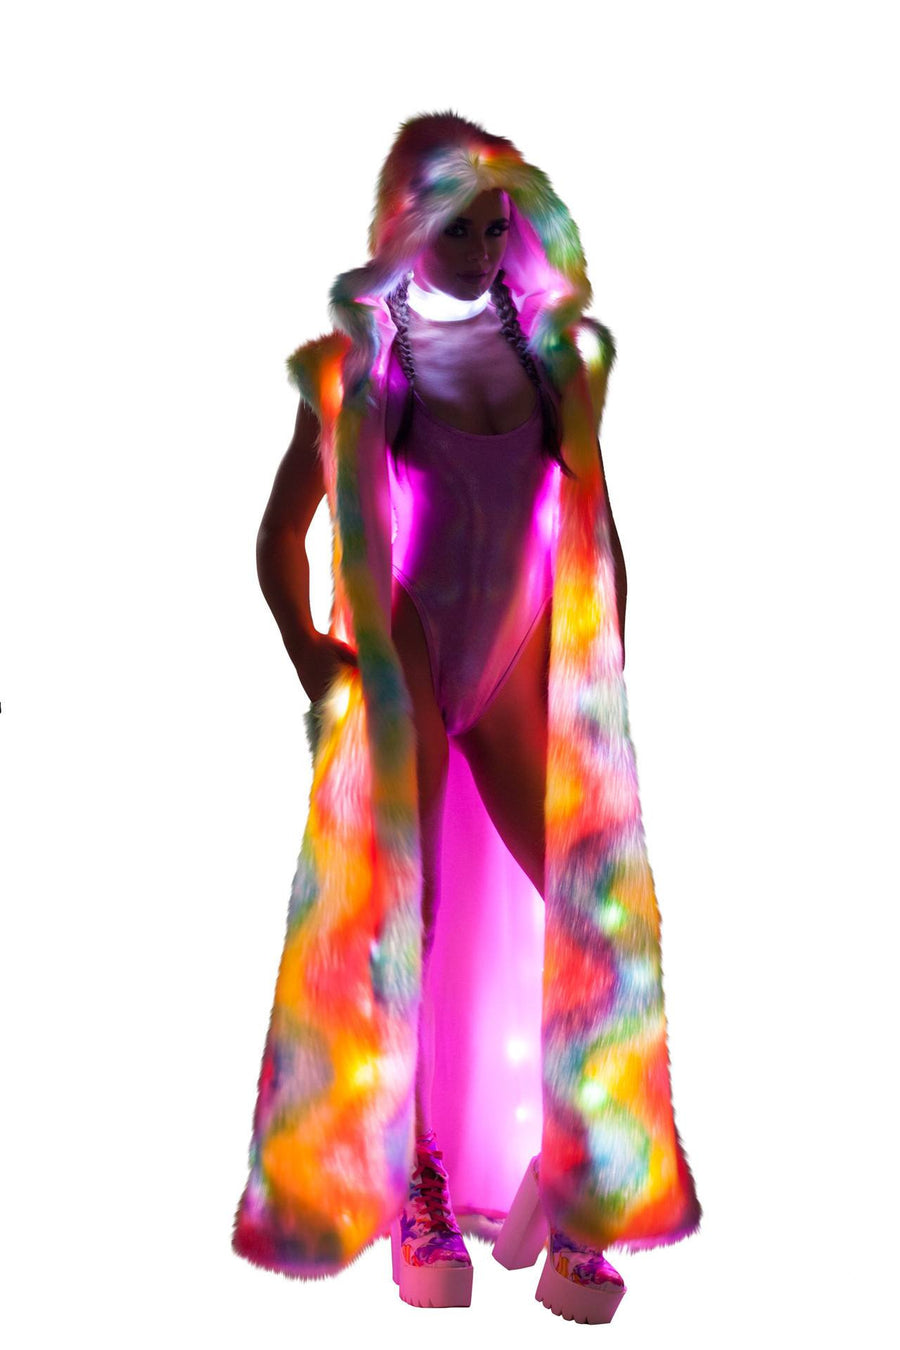 J-Valentine Rainbow Sherbet Light-Up Hooded Duster - Light-Up Hooded Duster, J-Valentine, YourLamode